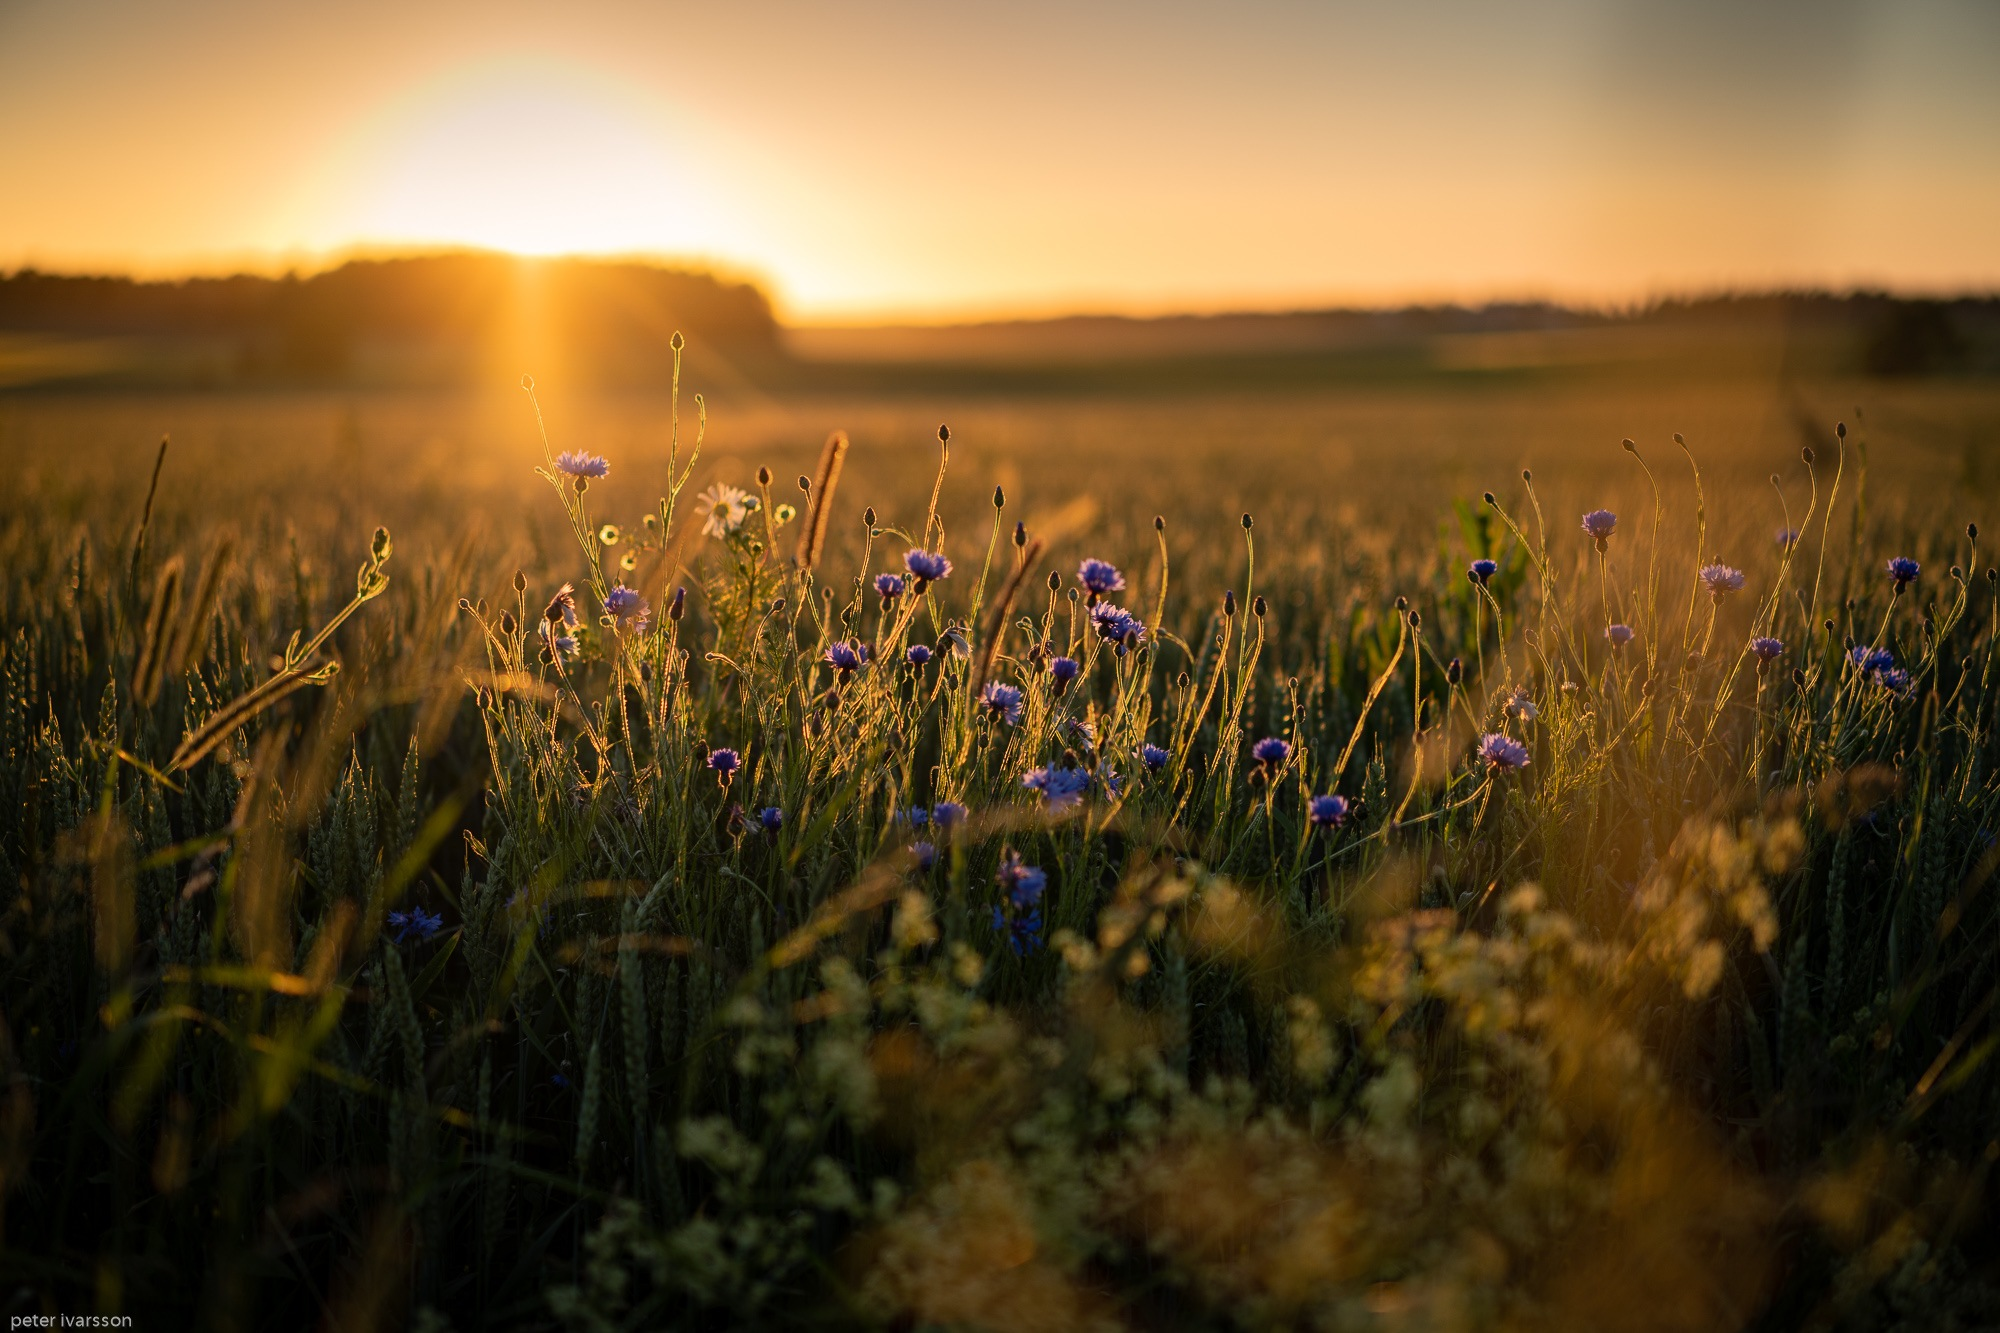 Midsummer day sunset by Peter Ivarsson